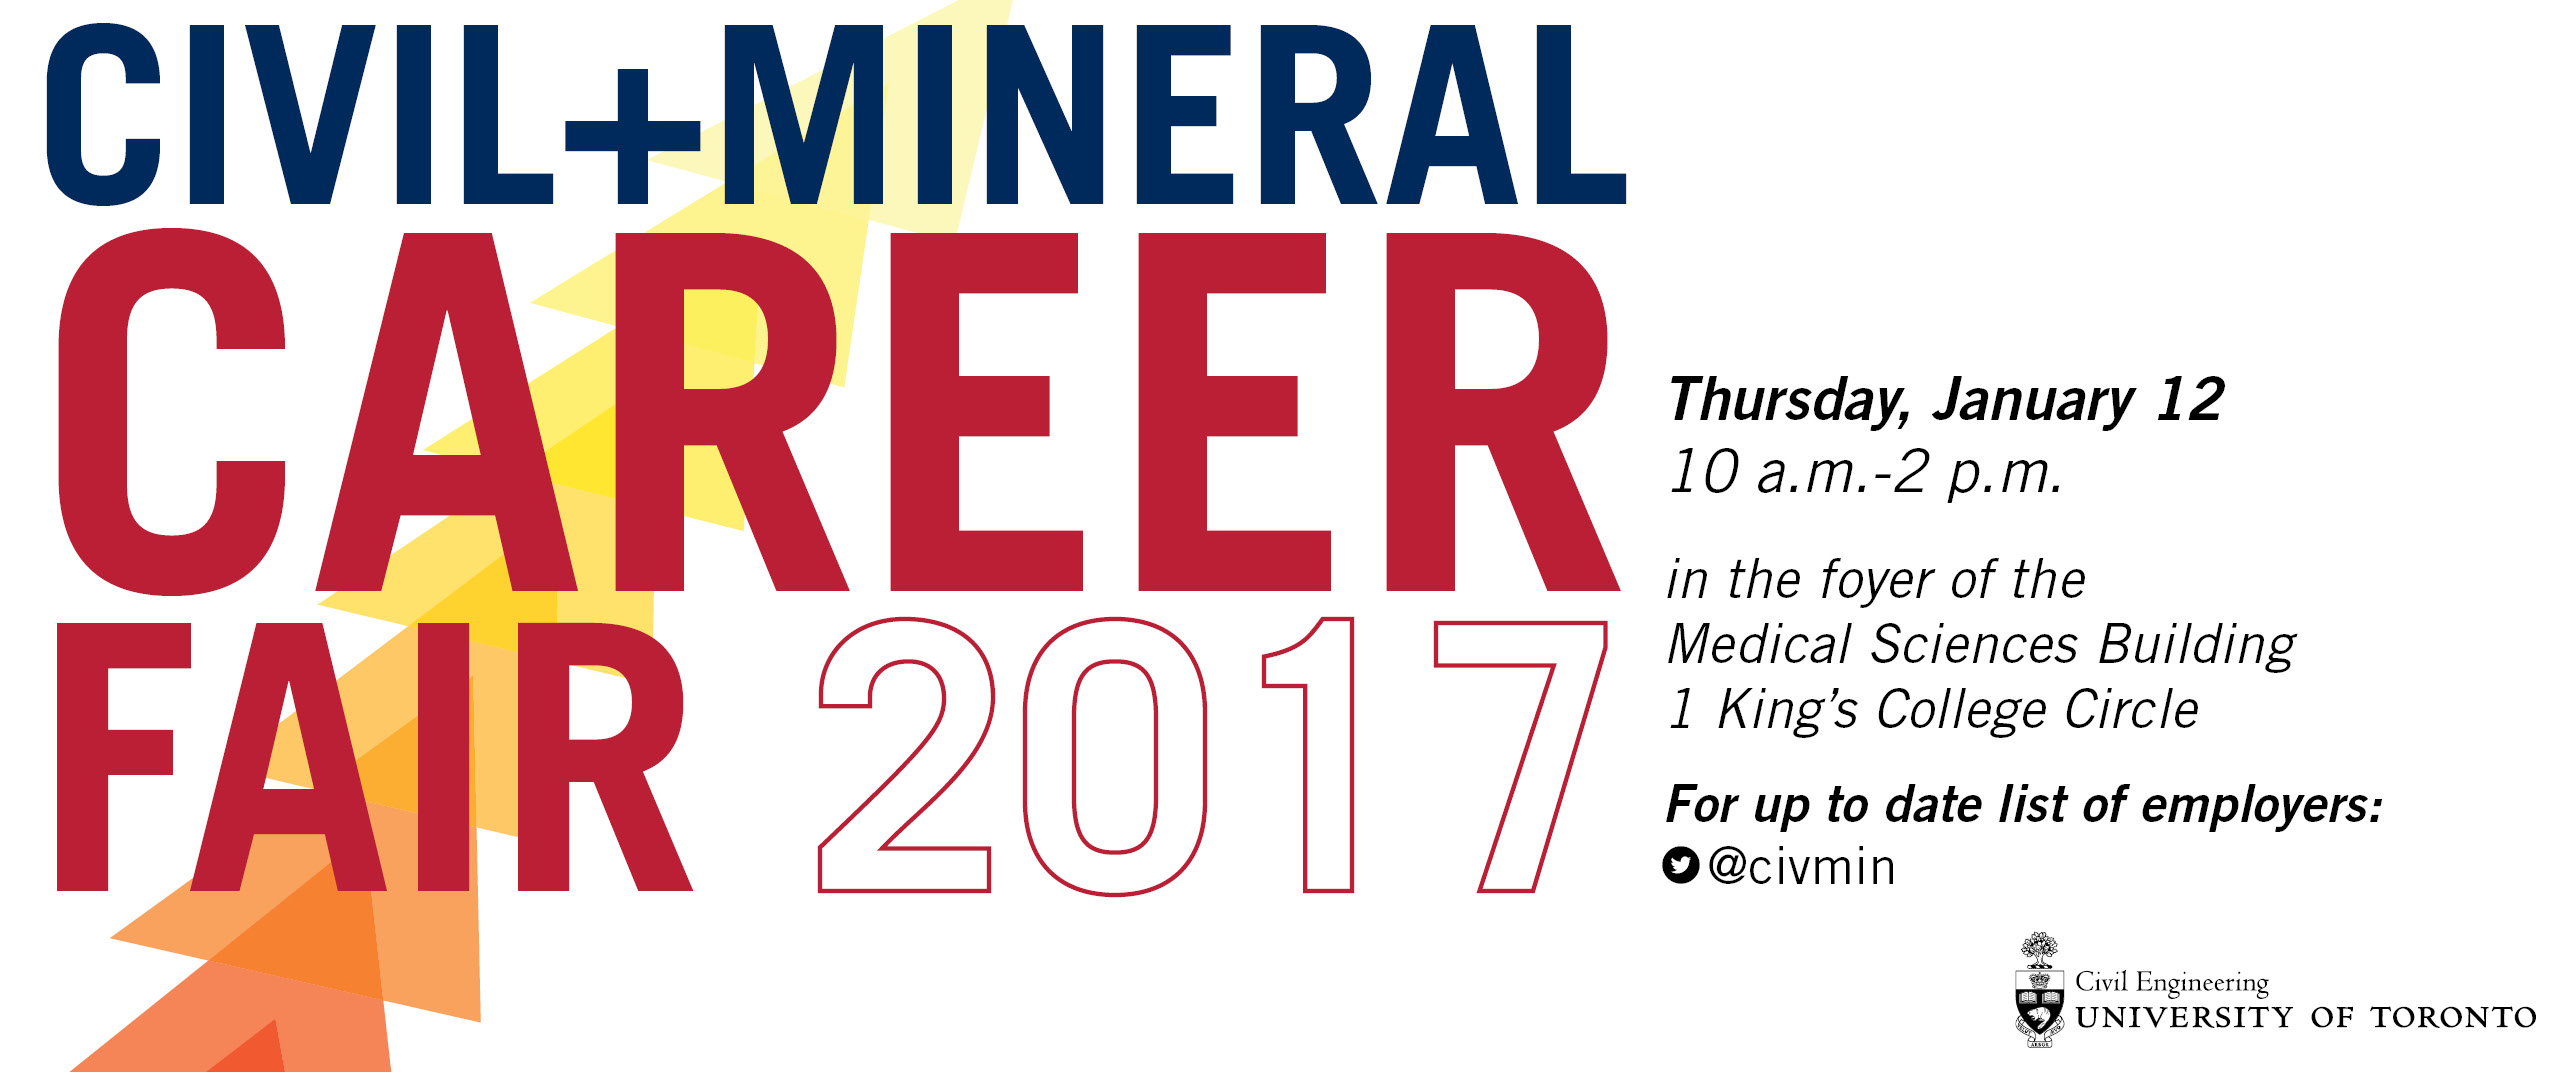 Civil+Mineral Career Fair 2017 | Thursday, January 12, 10am-2pm in the foyer of the Medical Sciences Building, 1 King's College Circle